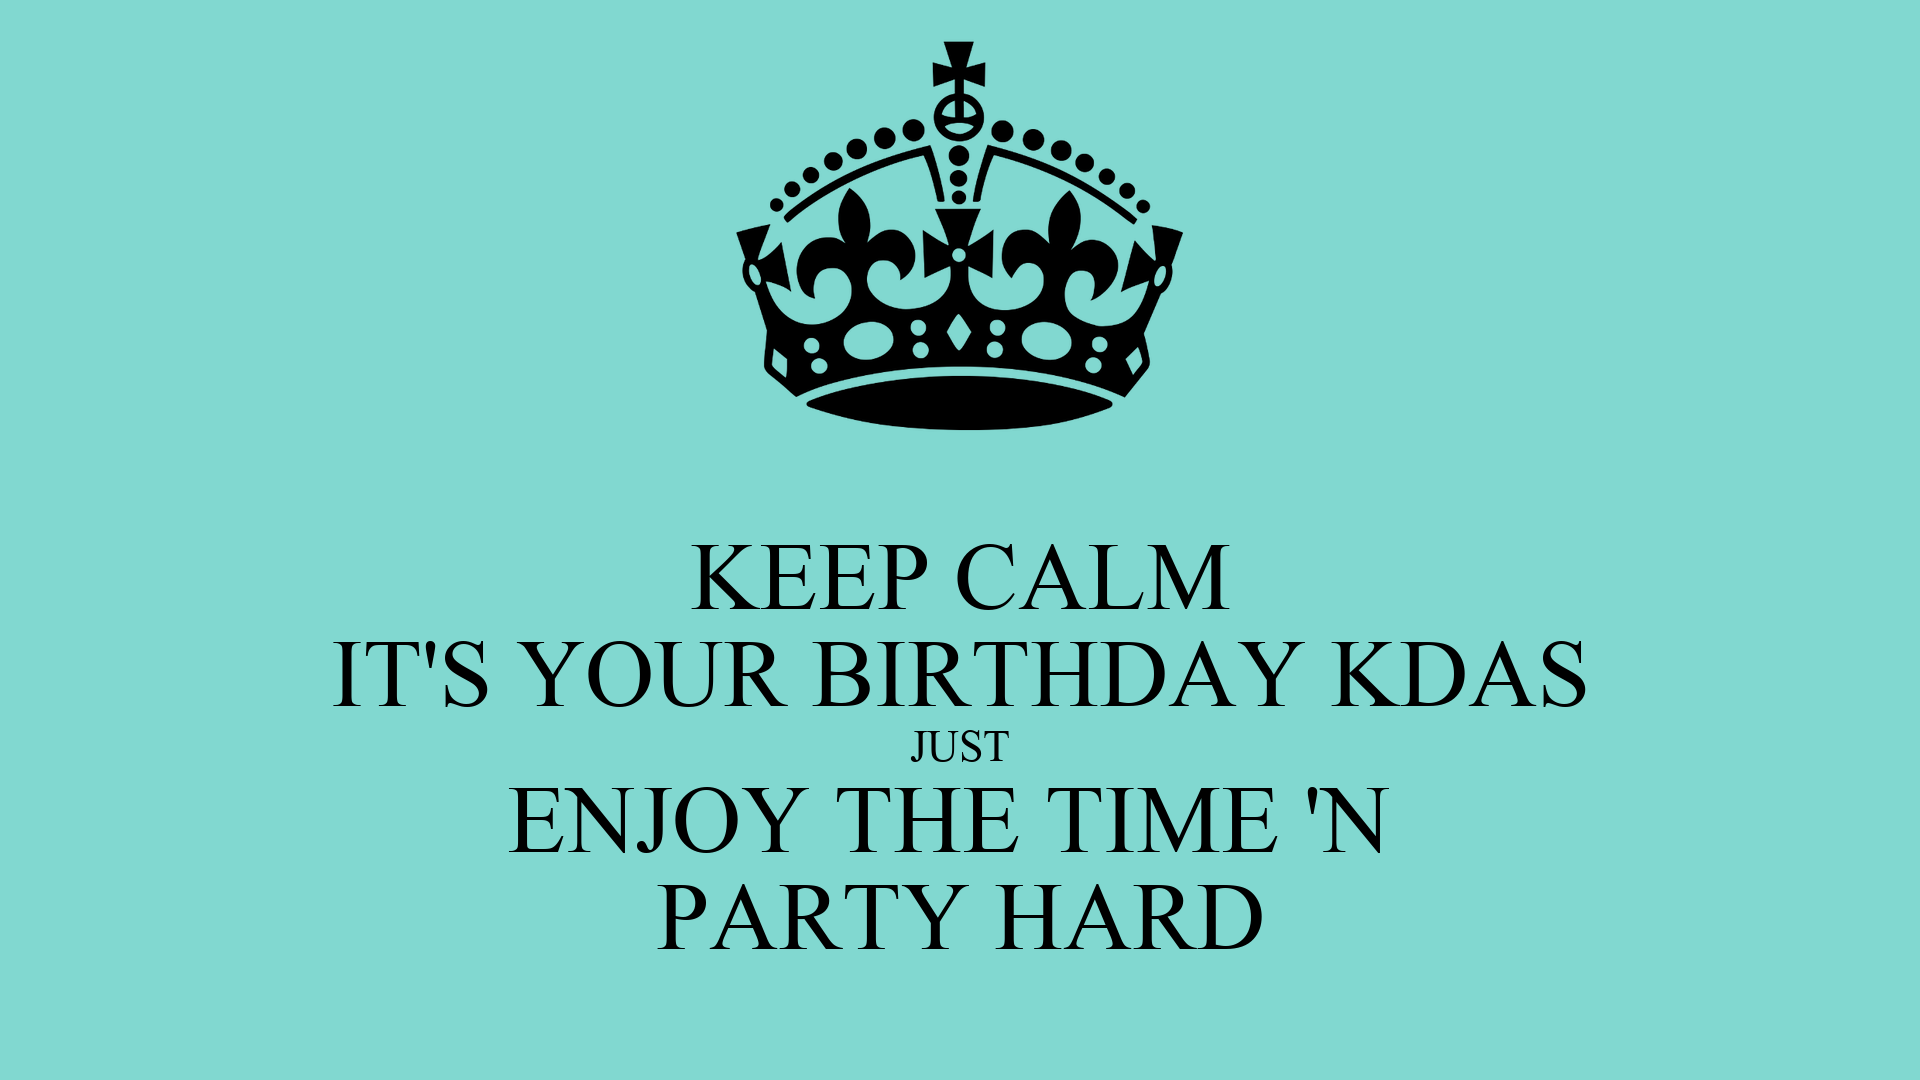 KEEP CALM IT'S YOUR BIRTHDAY KDAS JUST ENJOY THE TIME 'N ...